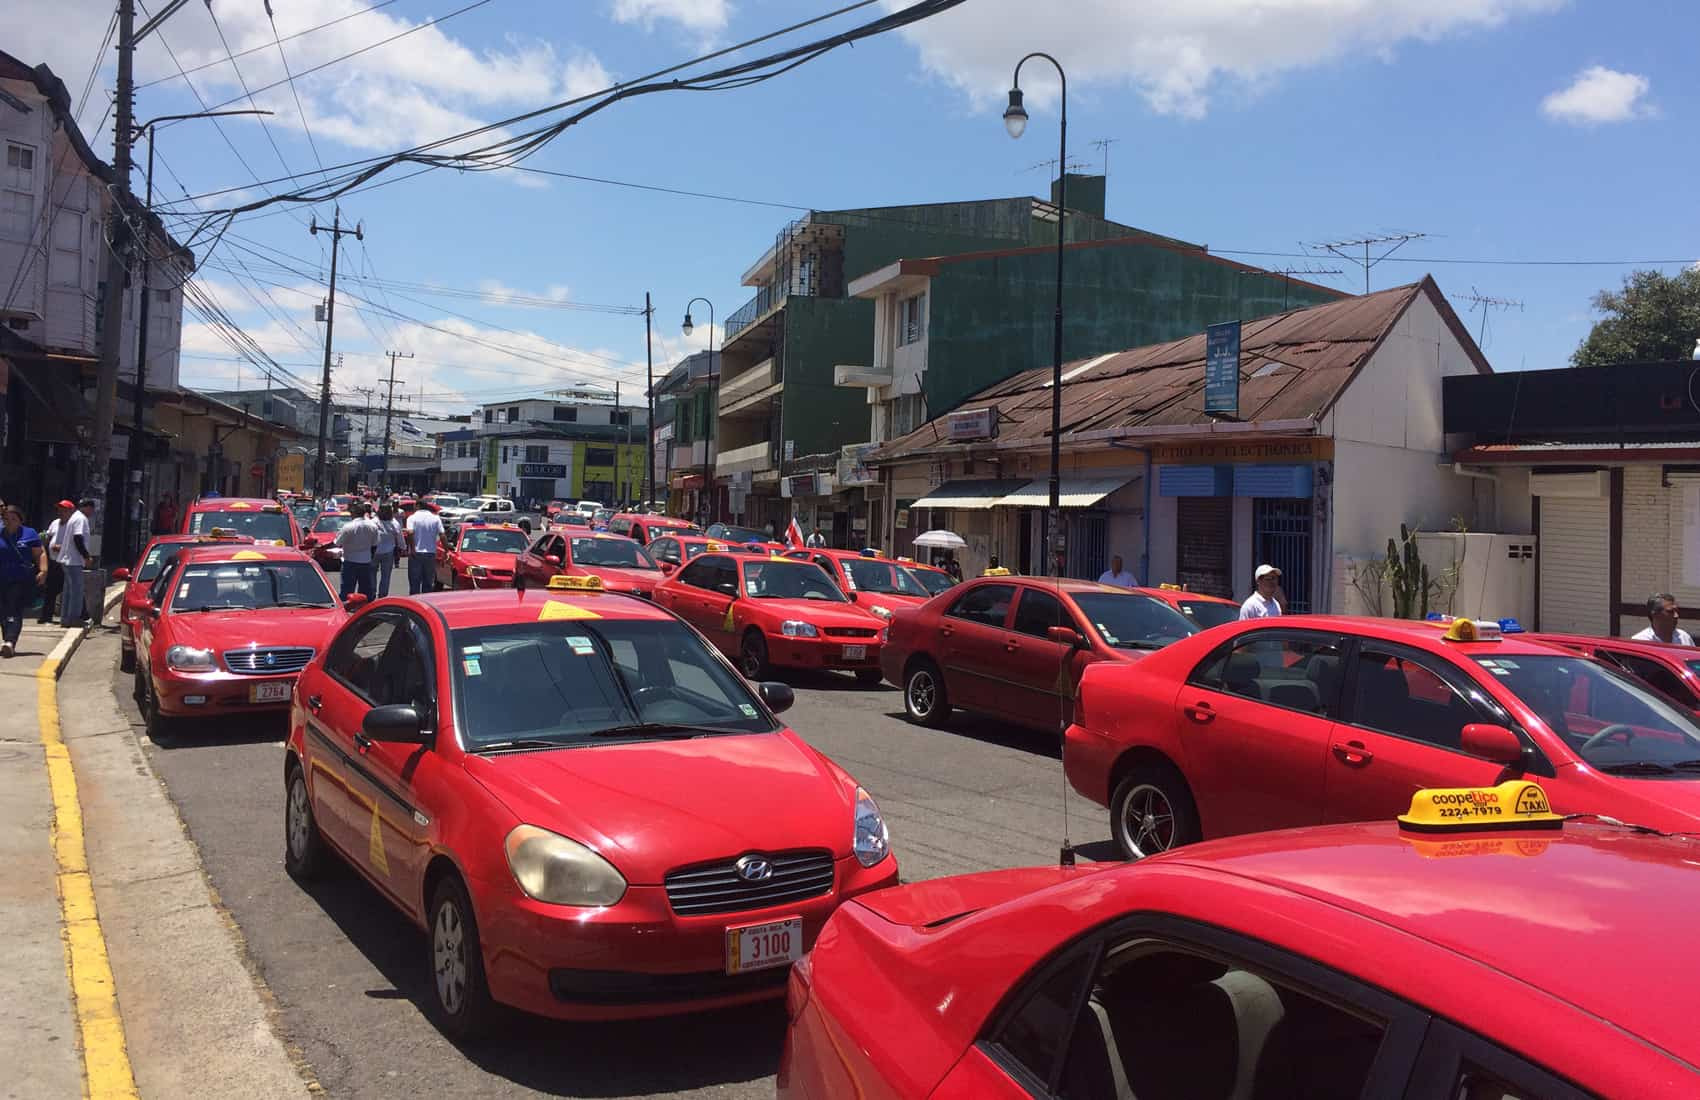 Taxis protest Uber by blocking traffic